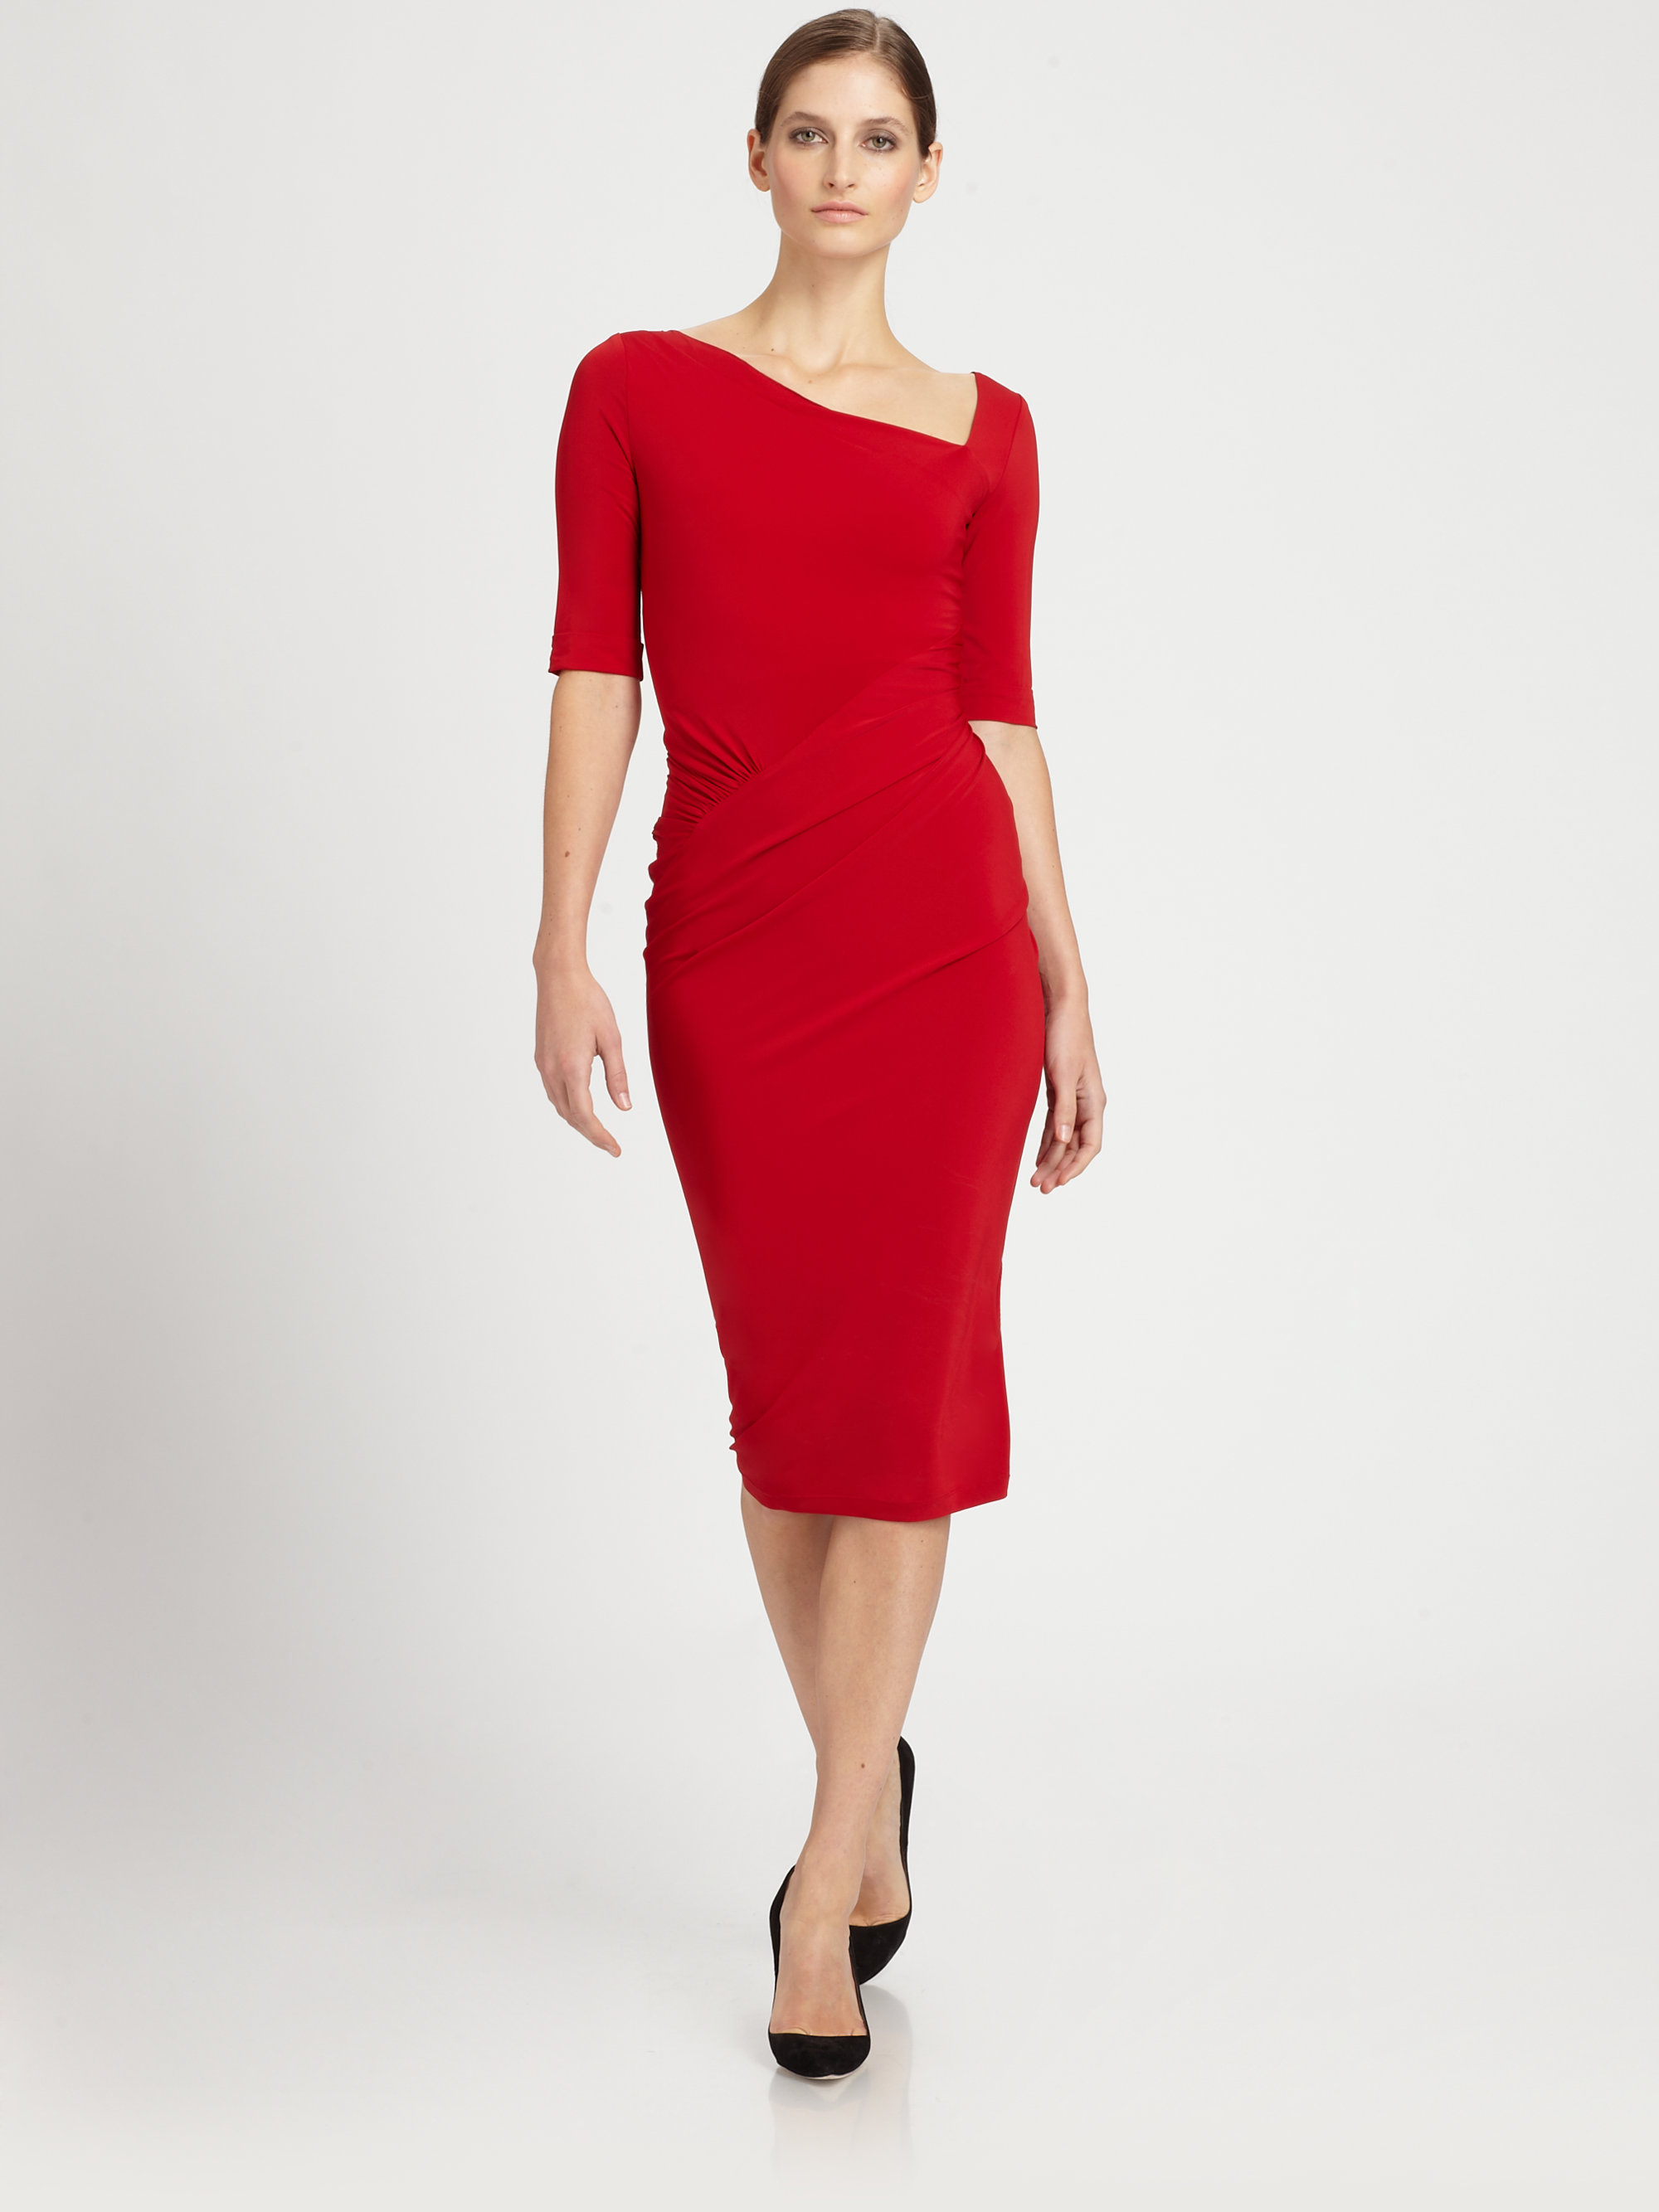 Donna Karan Superfine Jersey Dress In Red Lyst